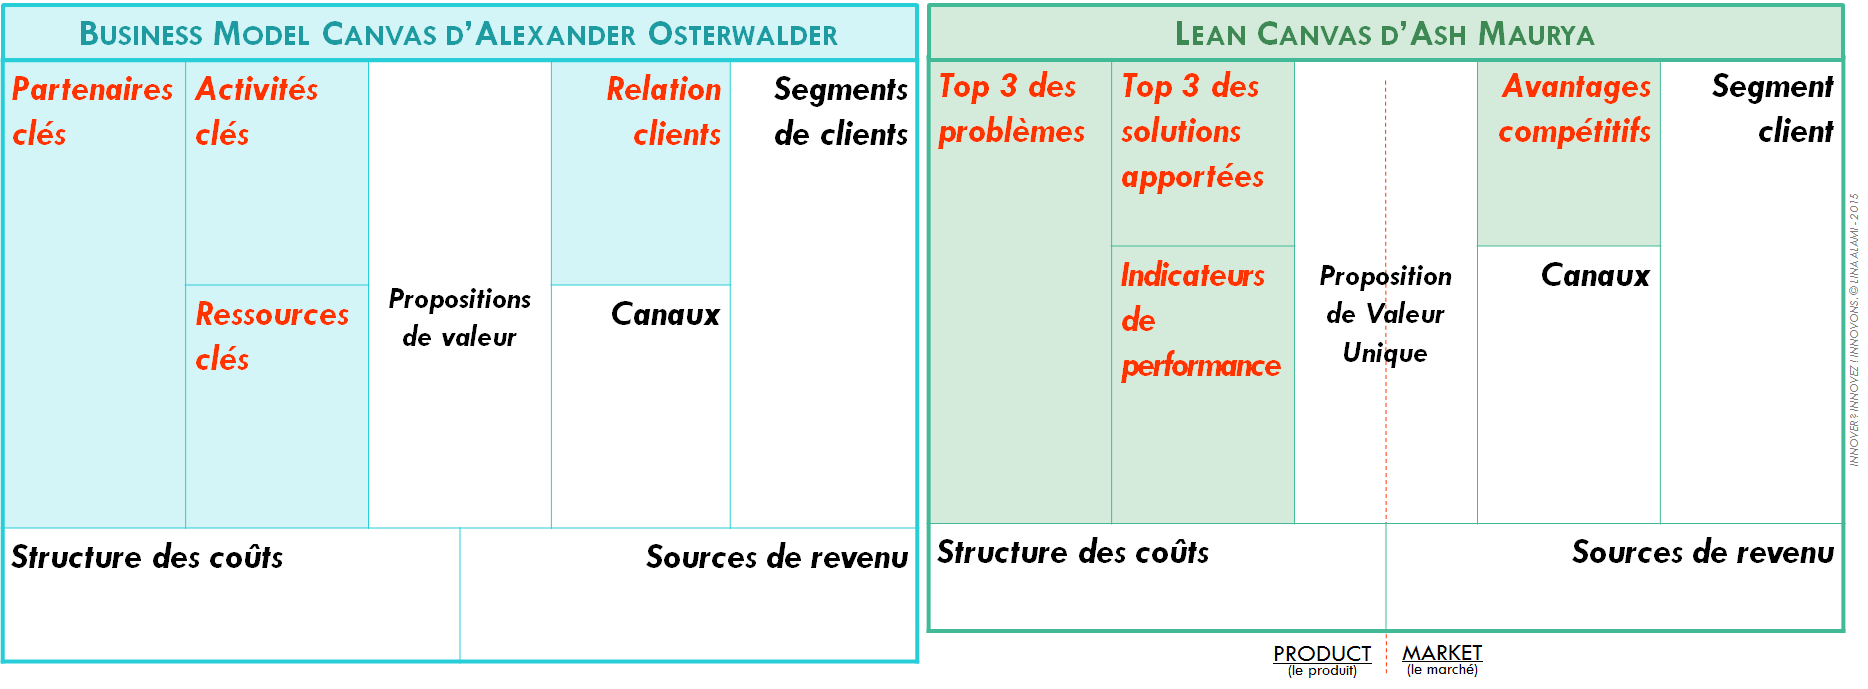 Comparaison Lean Canvas / Business Model Canvas - Lina Alami